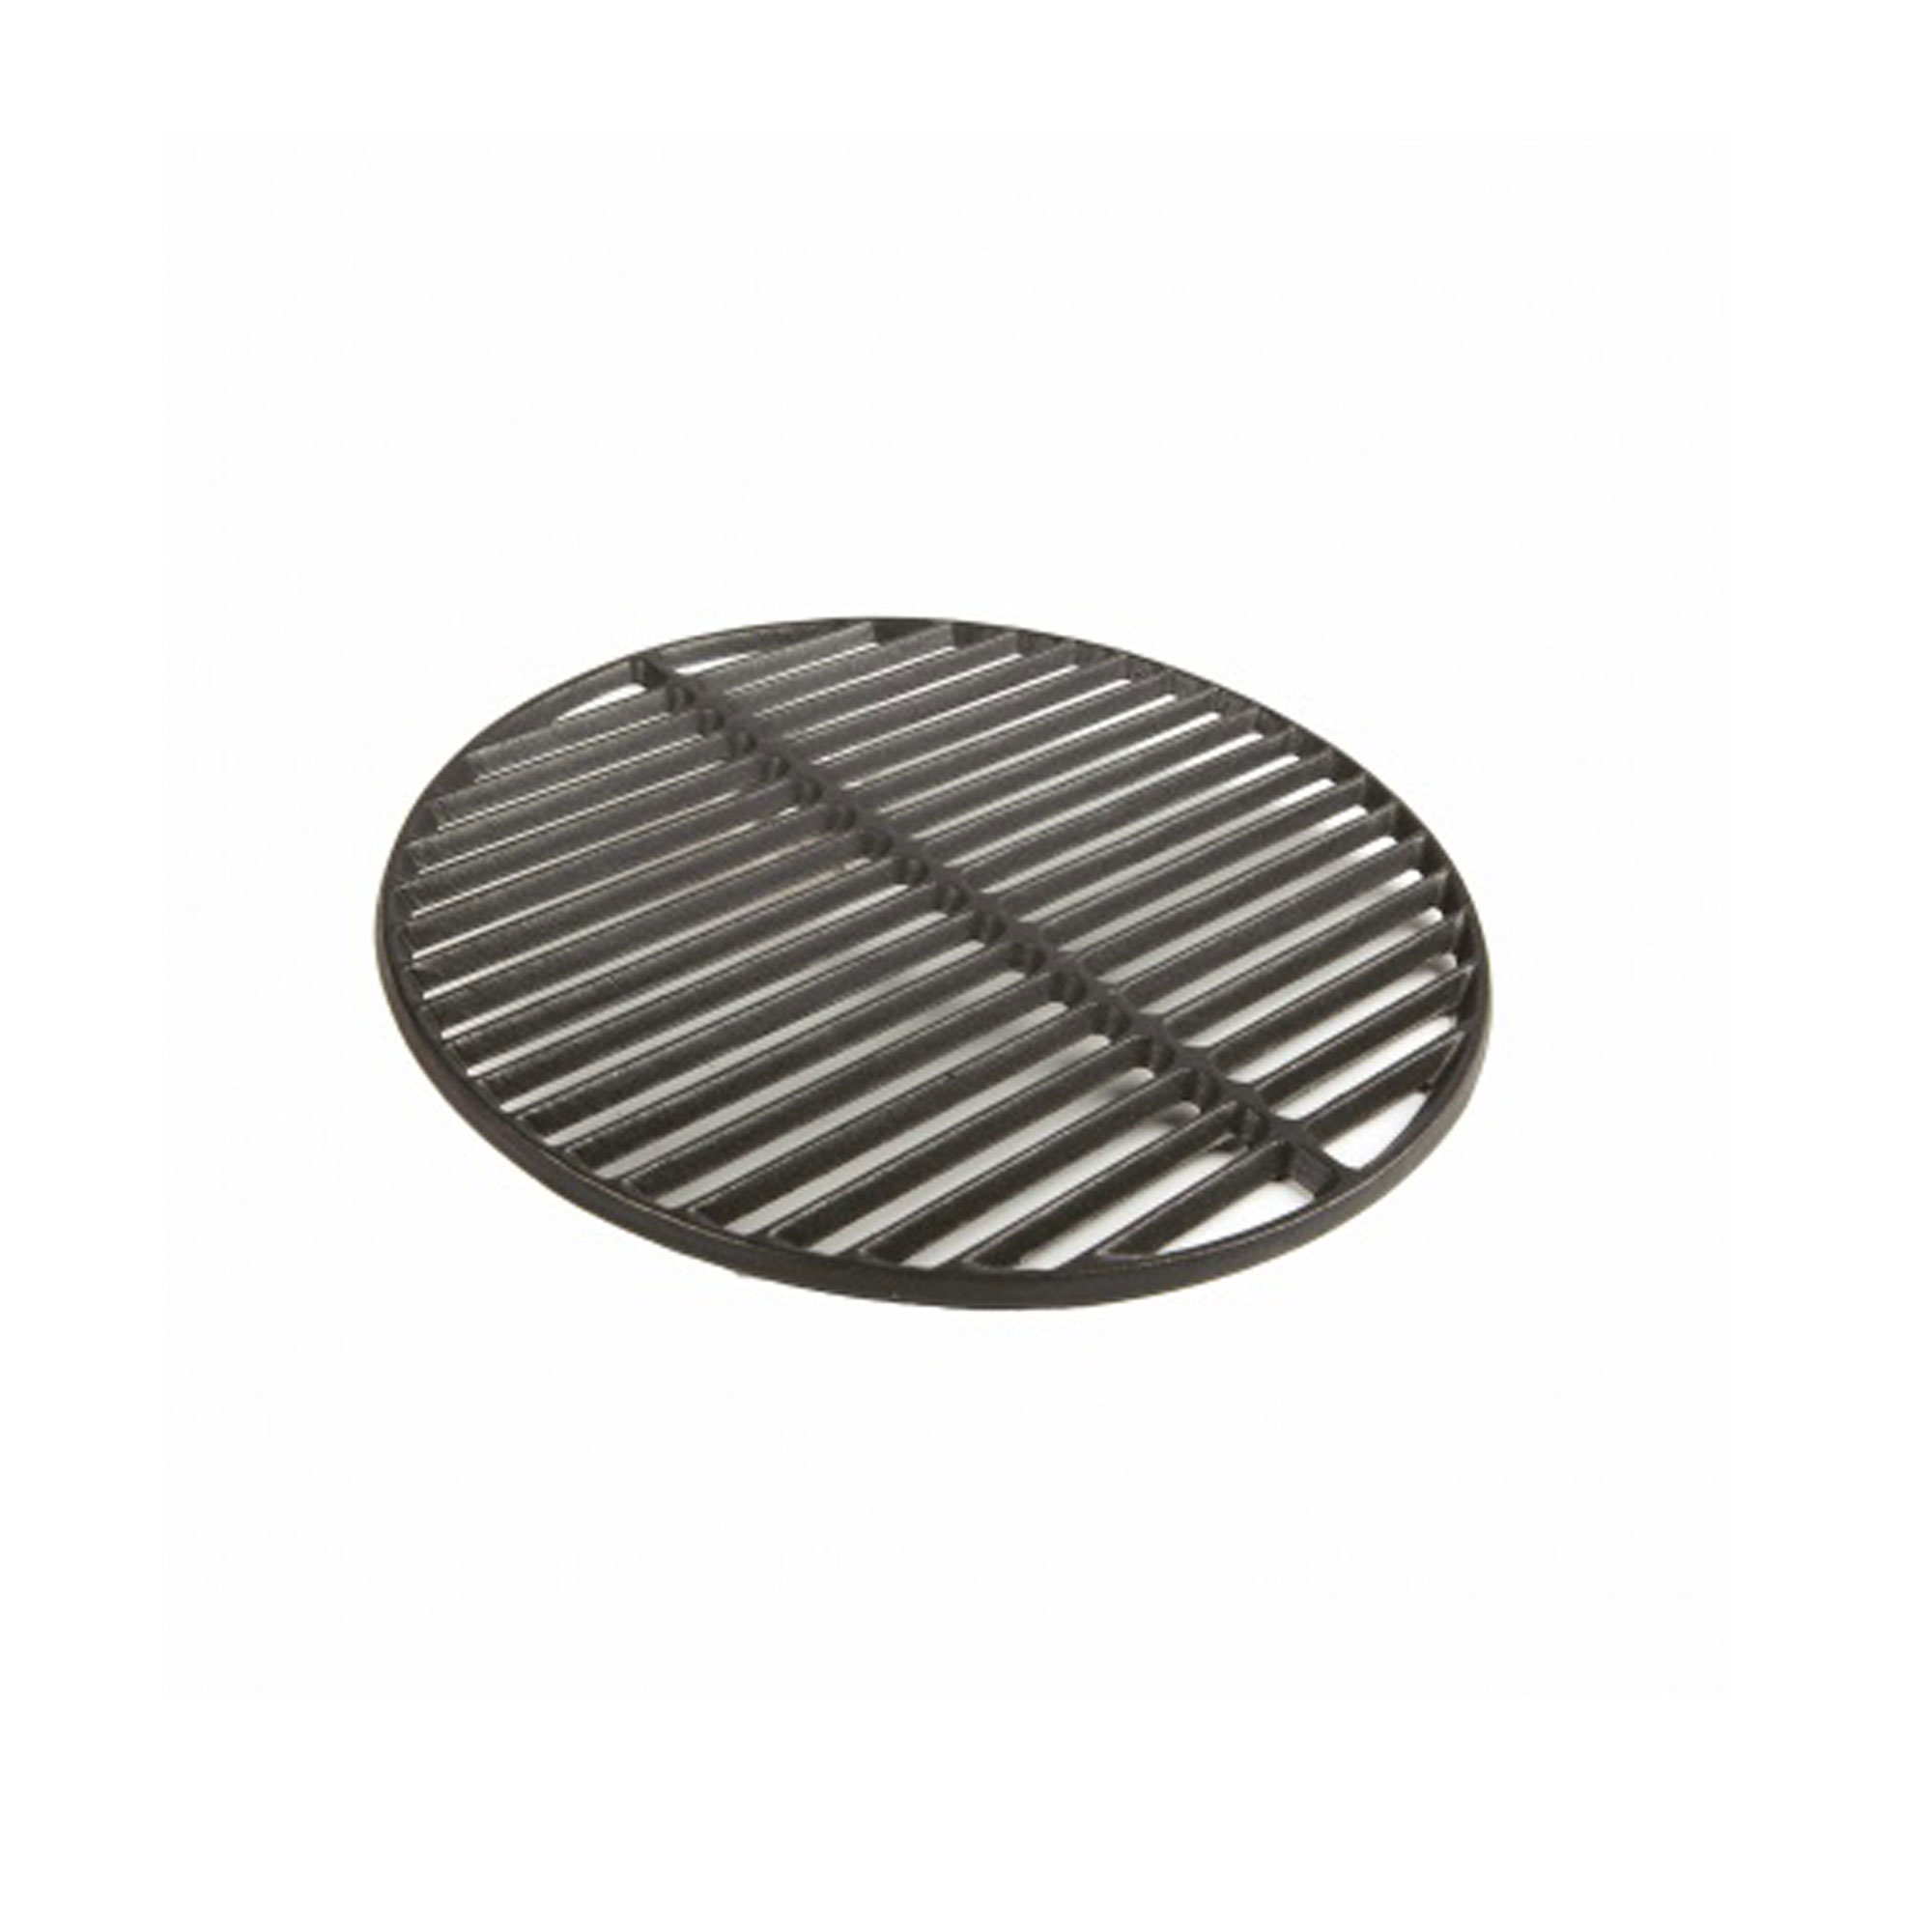 An image of Big Green Egg Large Cast Iron Searing Grid